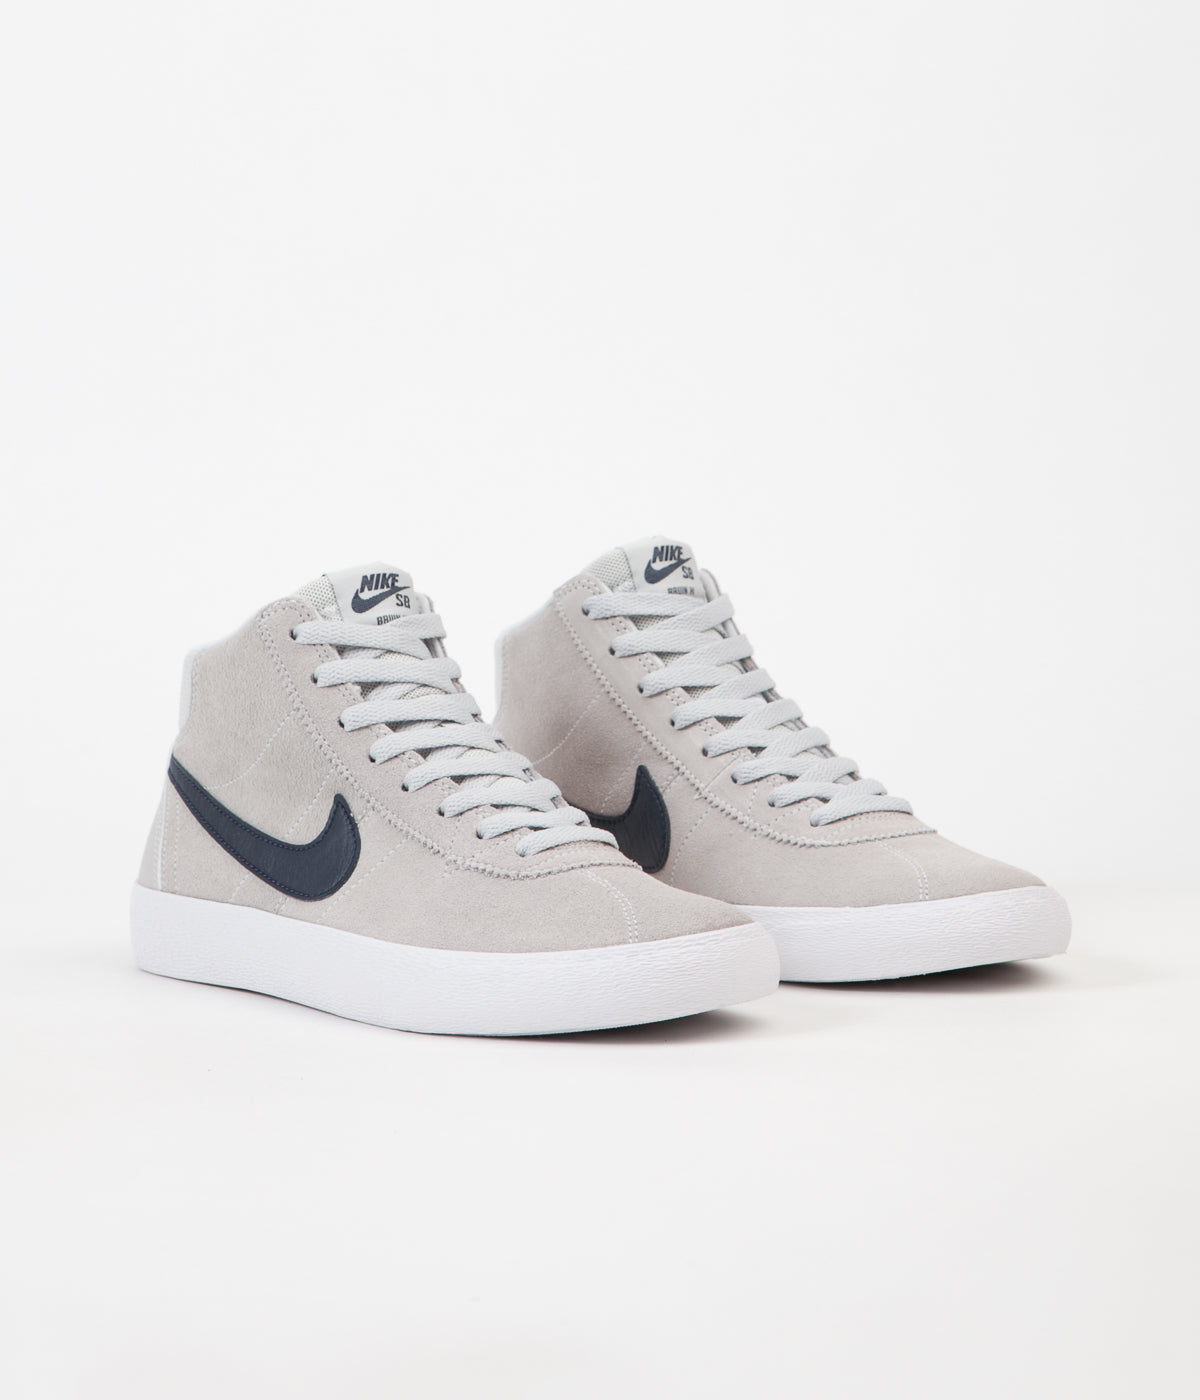 ... Nike SB Womens Bruin Hi Shoes - Pure Platinum   Obsidian - White ... fe5bb6e1c1